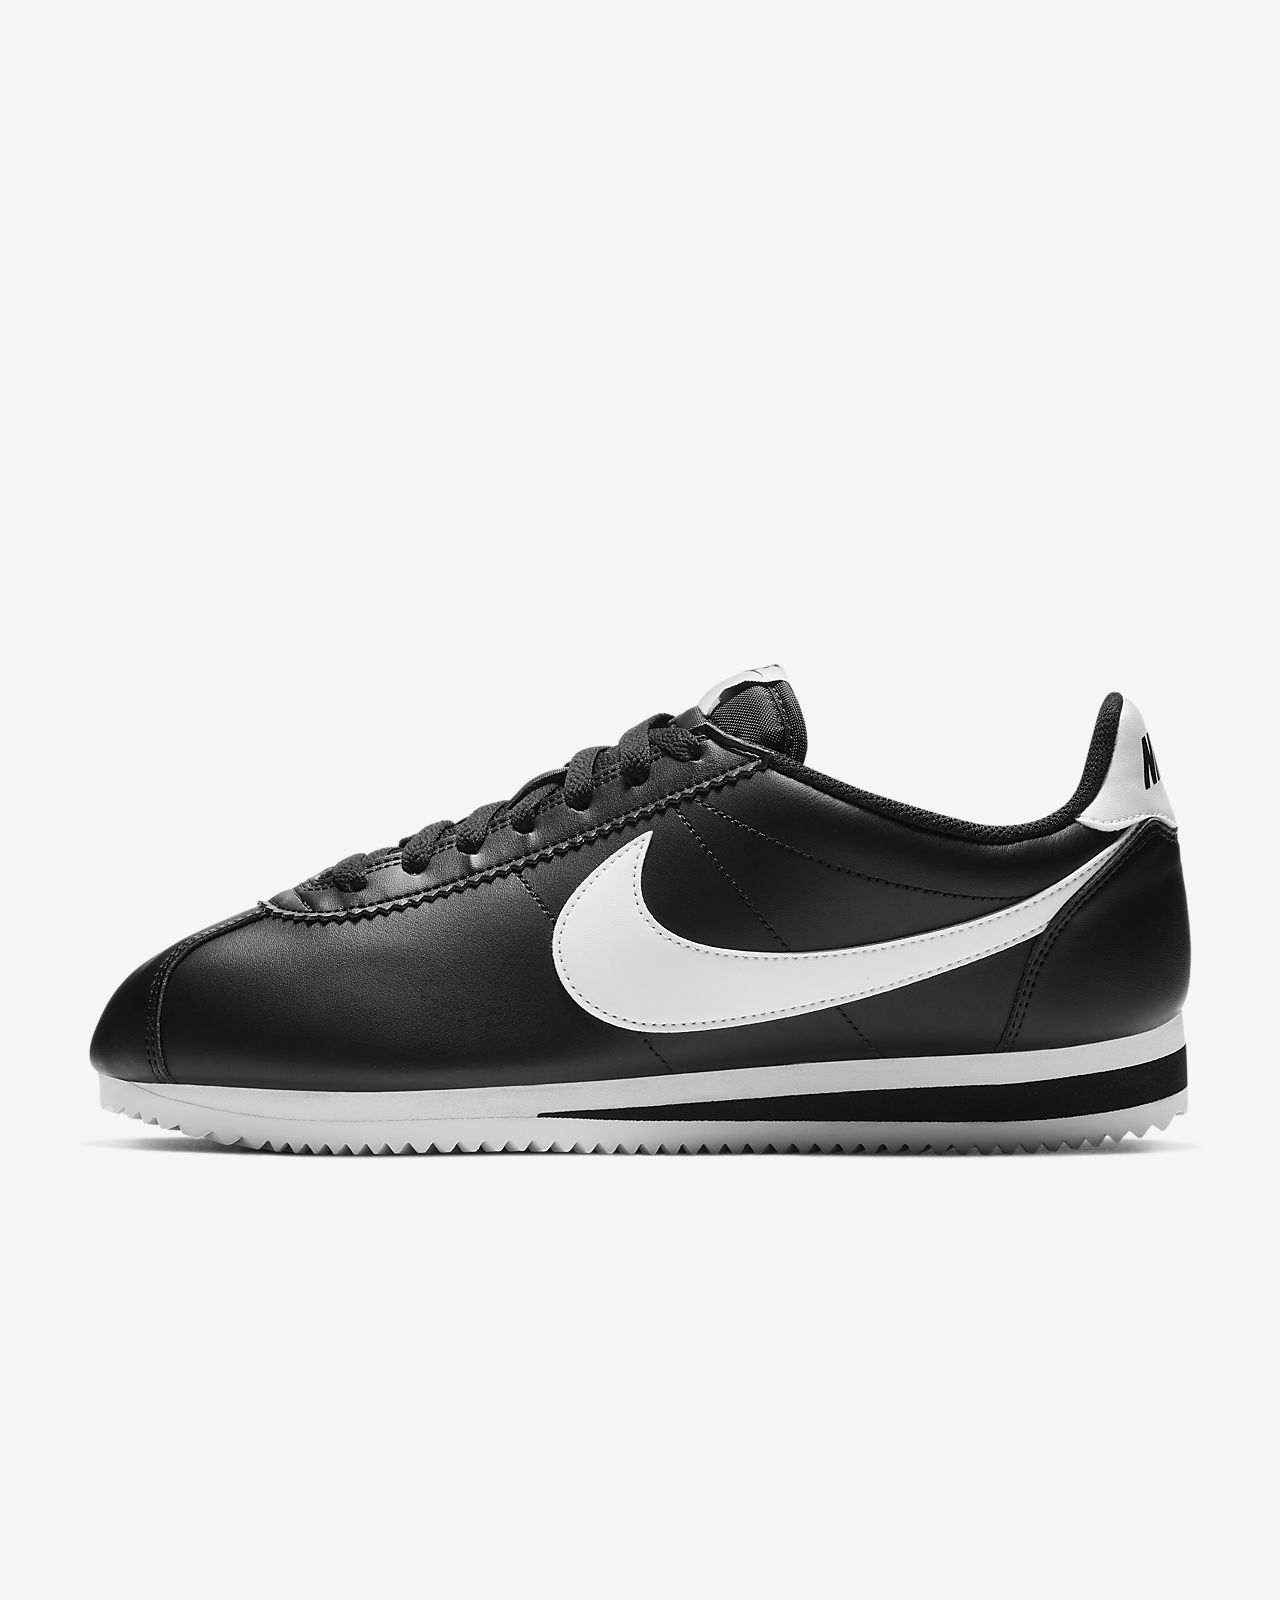 Low Resolution Nike Classic Cortez Women s Shoe Nike Classic Cortez Women s  Shoe 550955b42